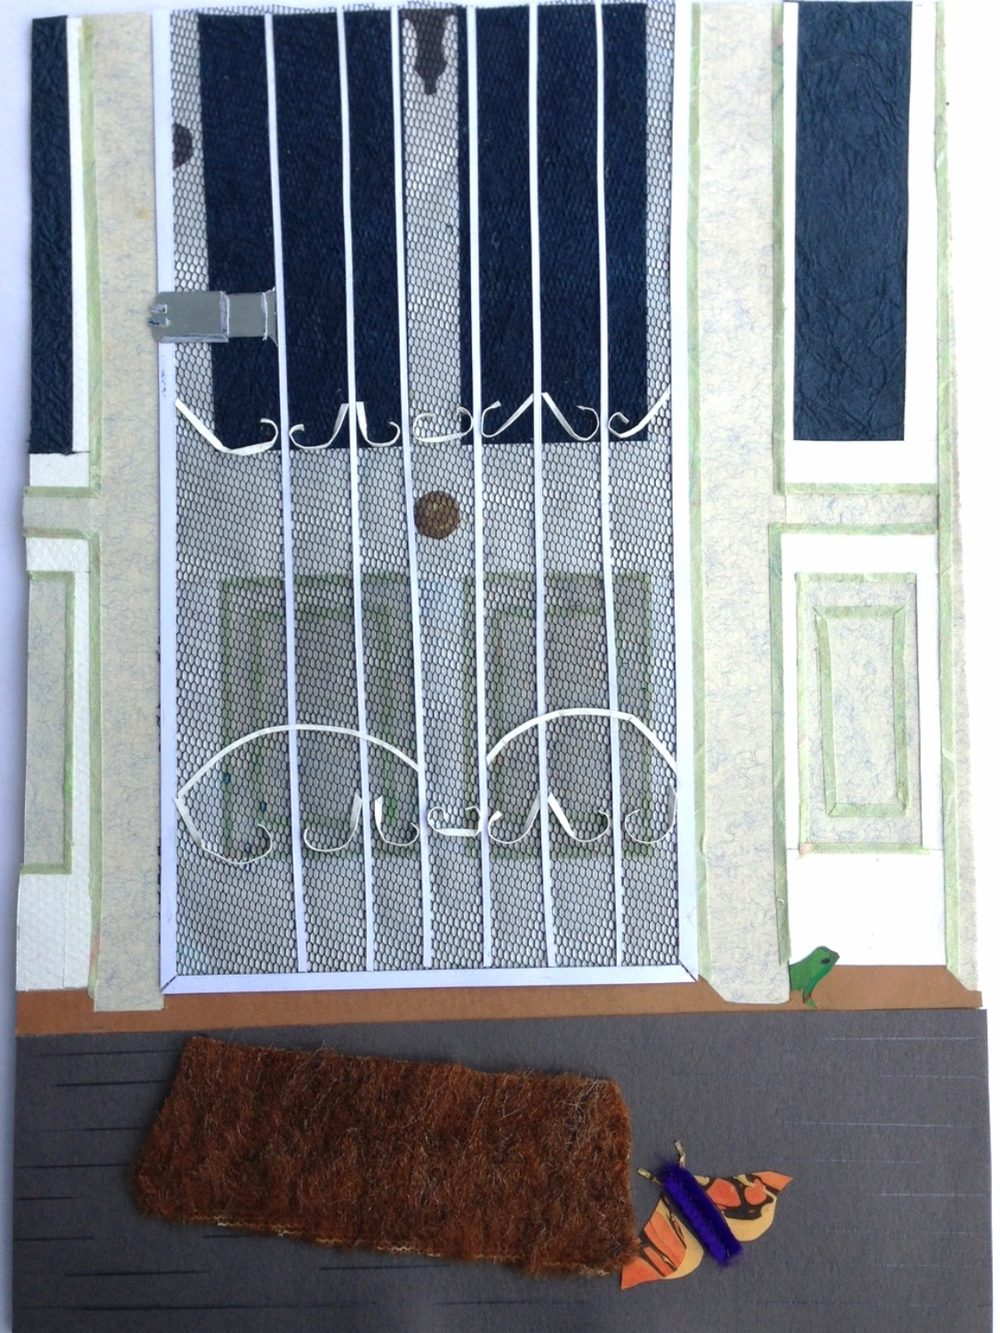 At My House .  Paper cuts and original collage for children's book illustration. 2001  ©  Ida Montague.